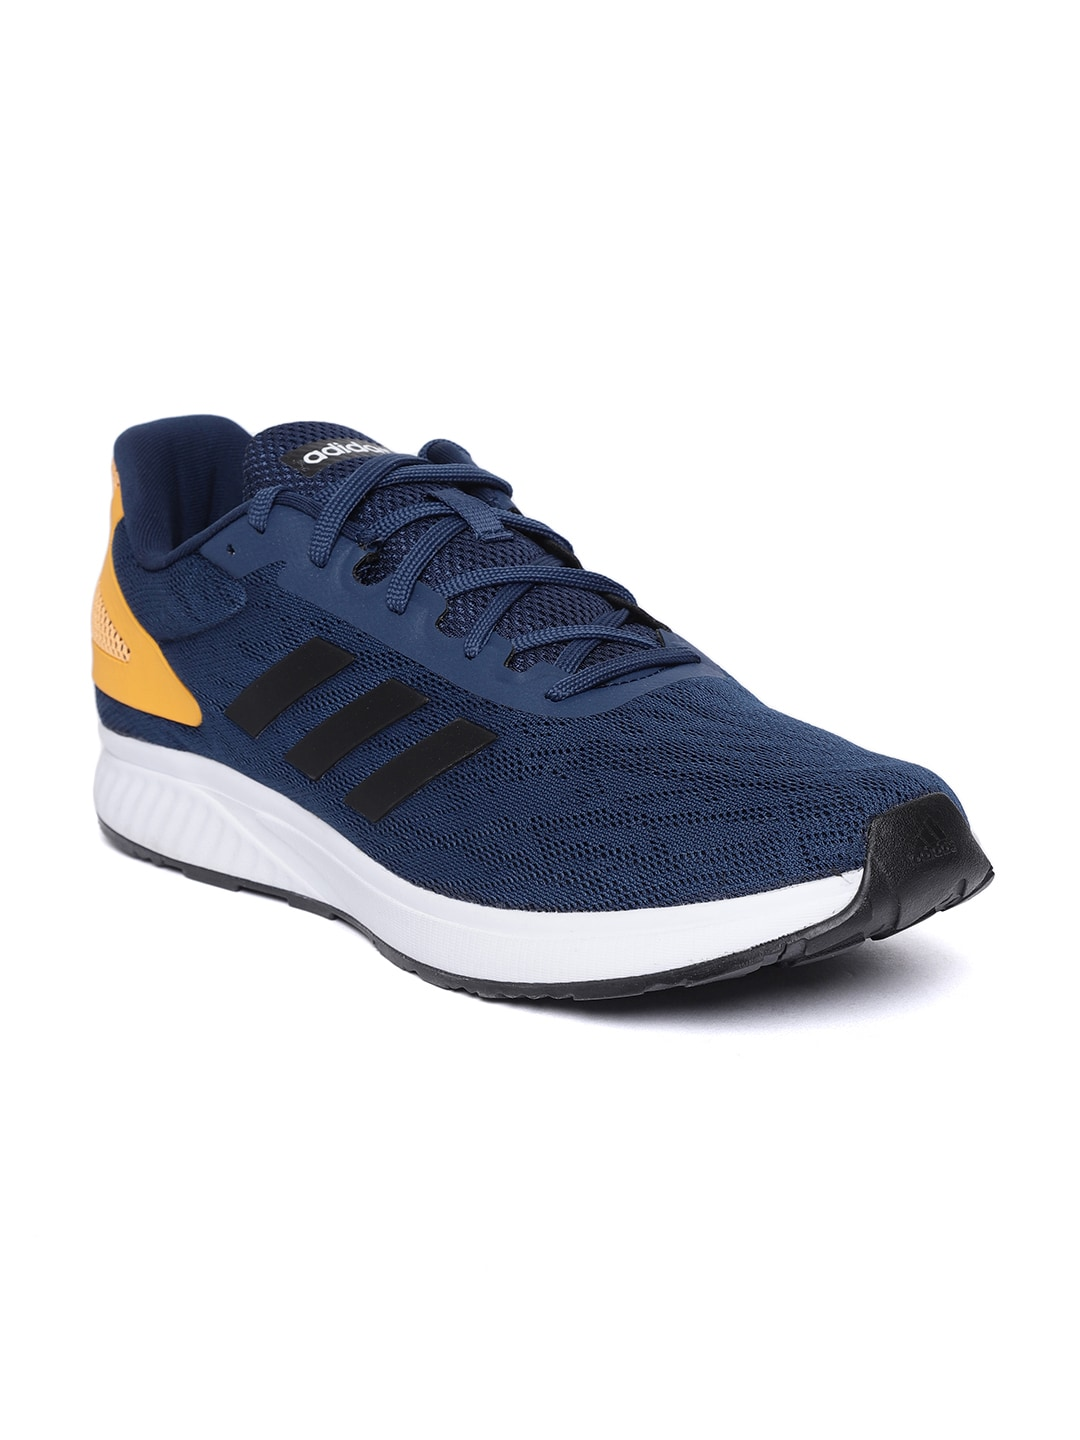 save off 950a3 f43b7 Adidas Basketball Shoes  Buy Adidas Basketball Shoes Online in India at  Best Price